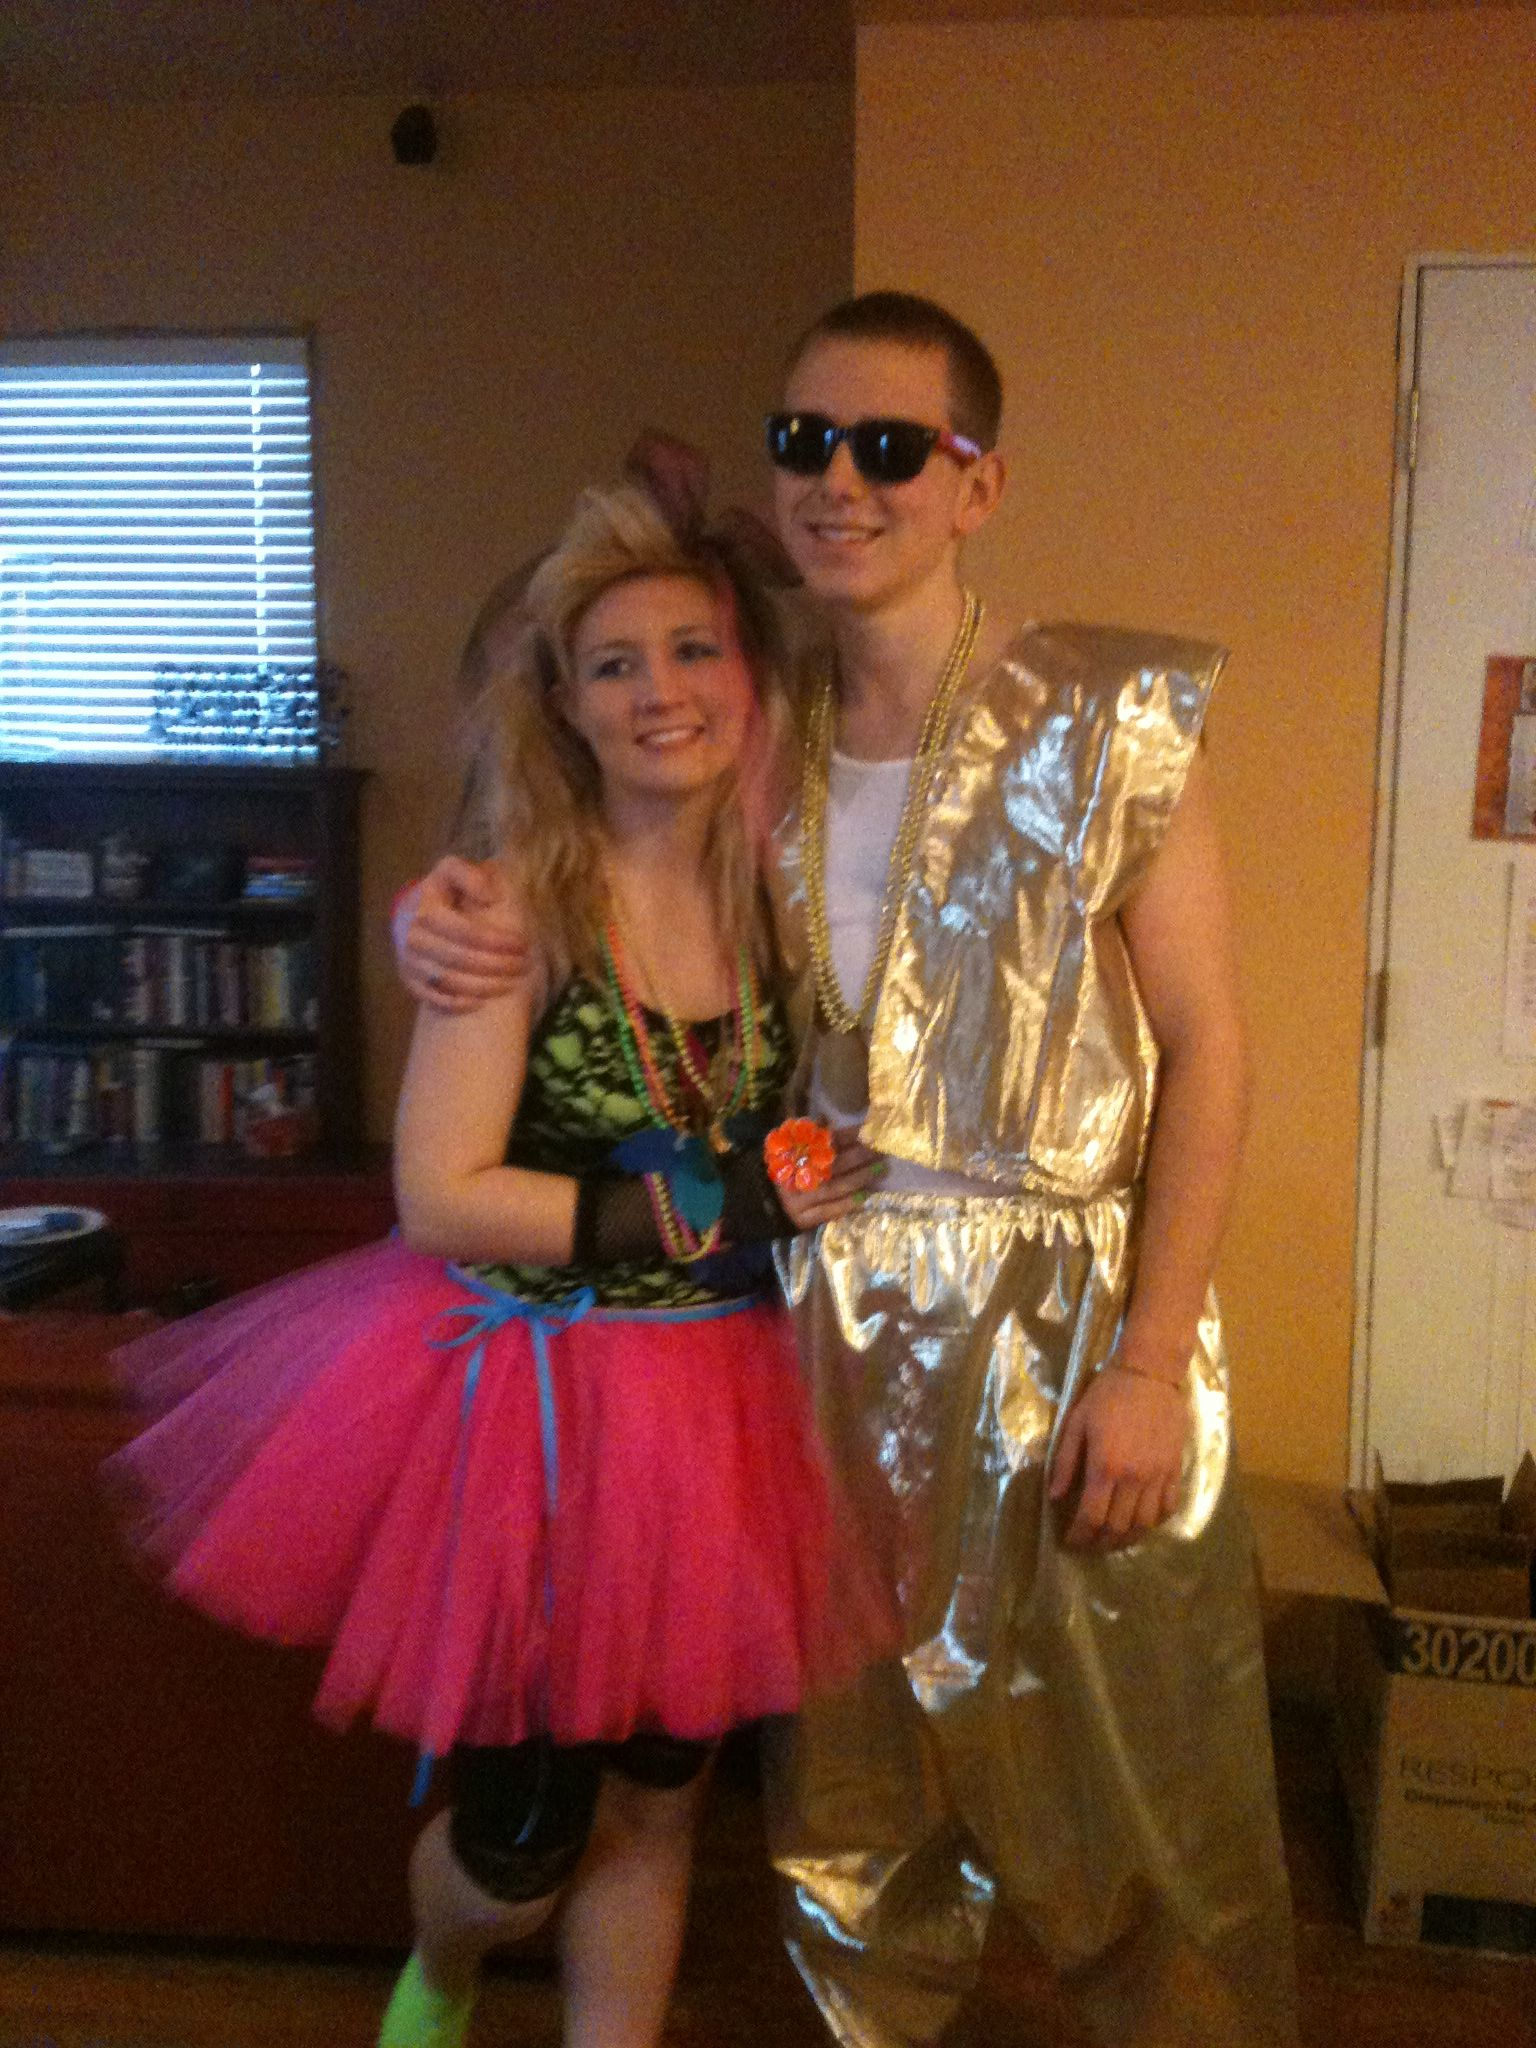 80u0027s couple halloween costume. MC hammer and cyndi lauper  sc 1 st  Pinterest & 80u0027s couple halloween costume. MC hammer and cyndi lauper ...